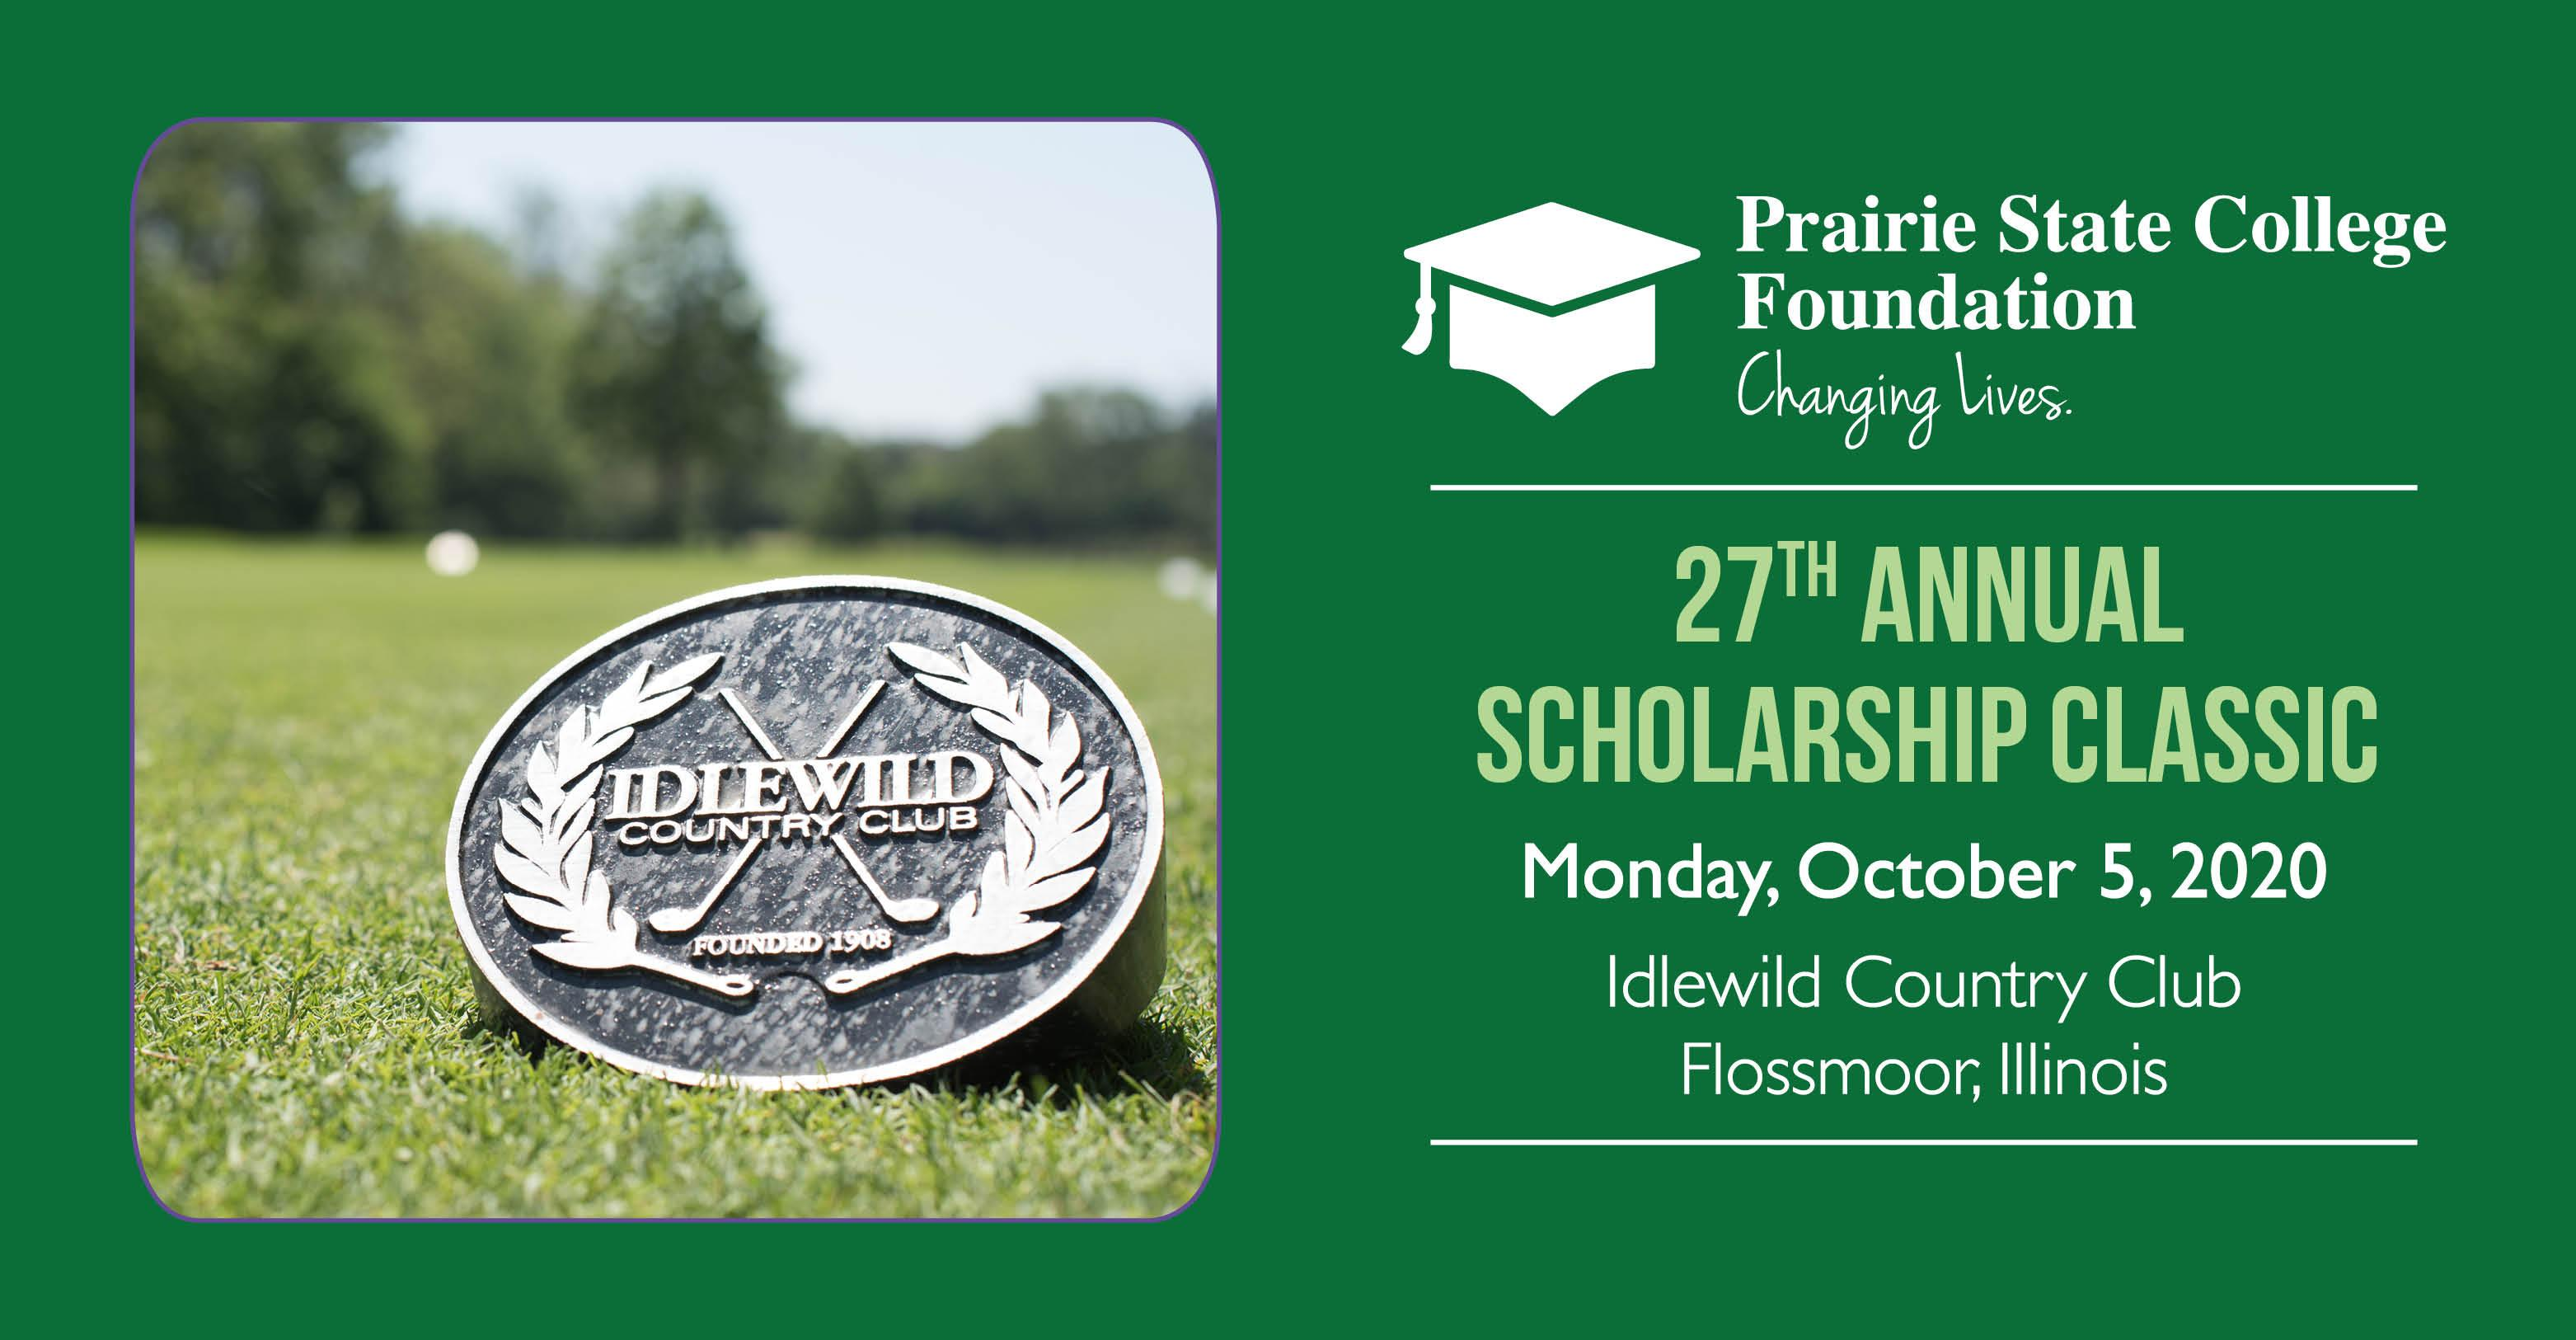 Prairie State College Foundation's 27th Annual Scholarship Classic: Monday, October 5, 2020 at Idlewild Country Club in Flossmoor, Illinois.